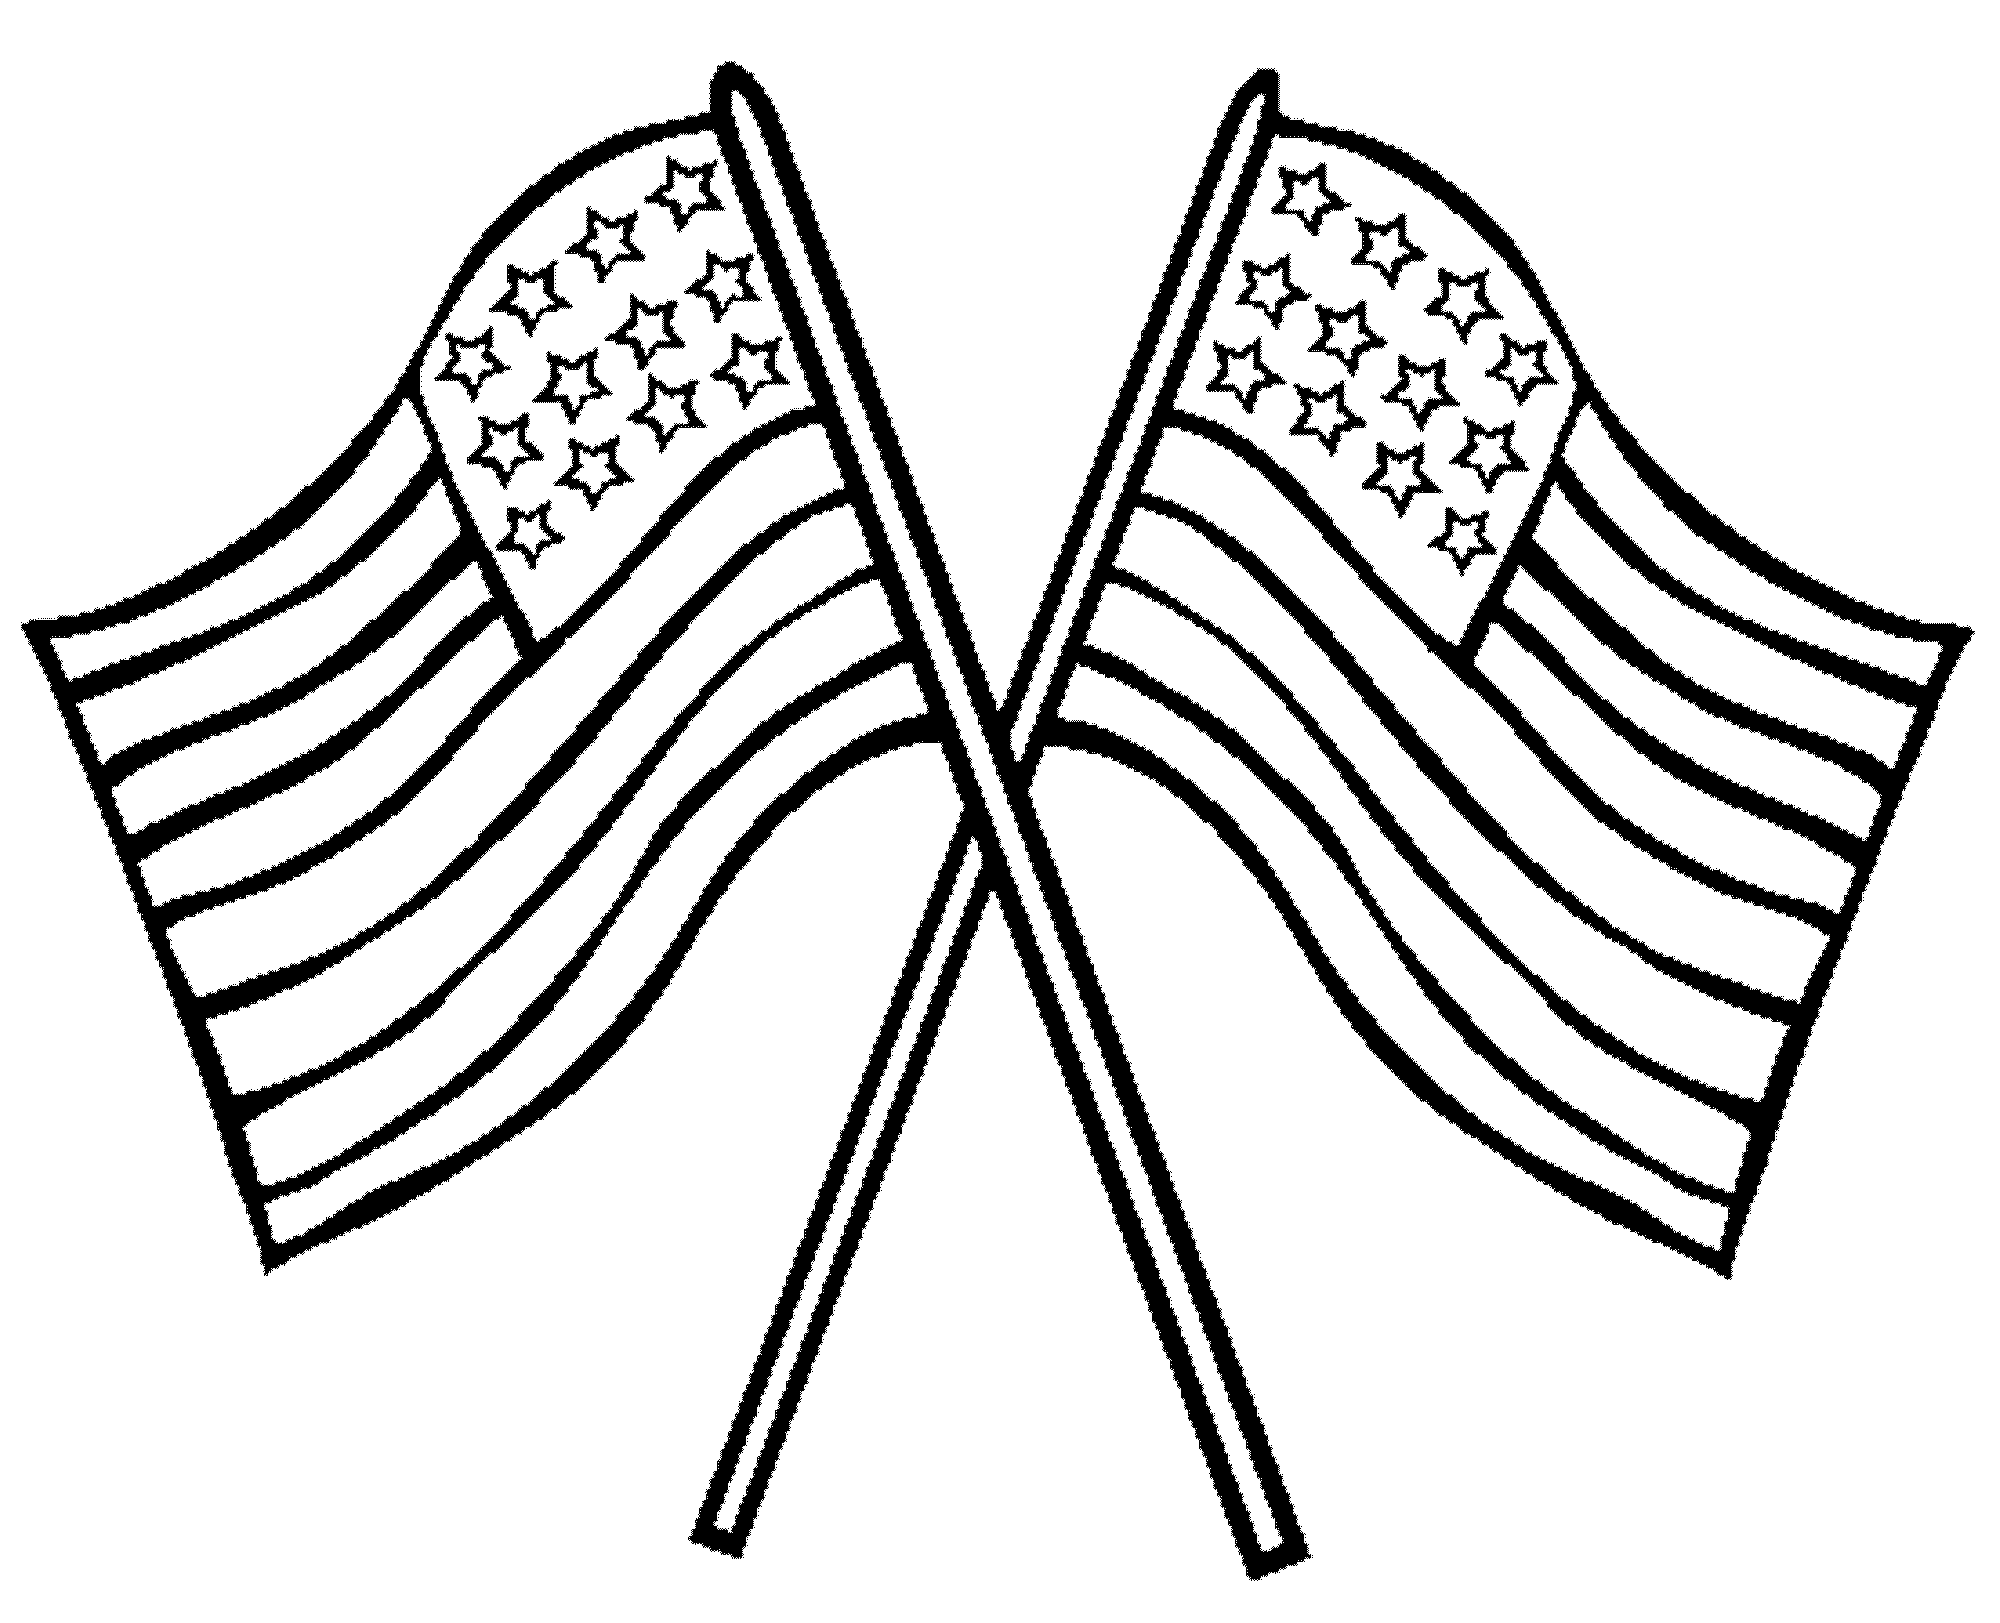 2000x1623 Incredible Canadian Flag Coloring Page With Flag Coloring Pages